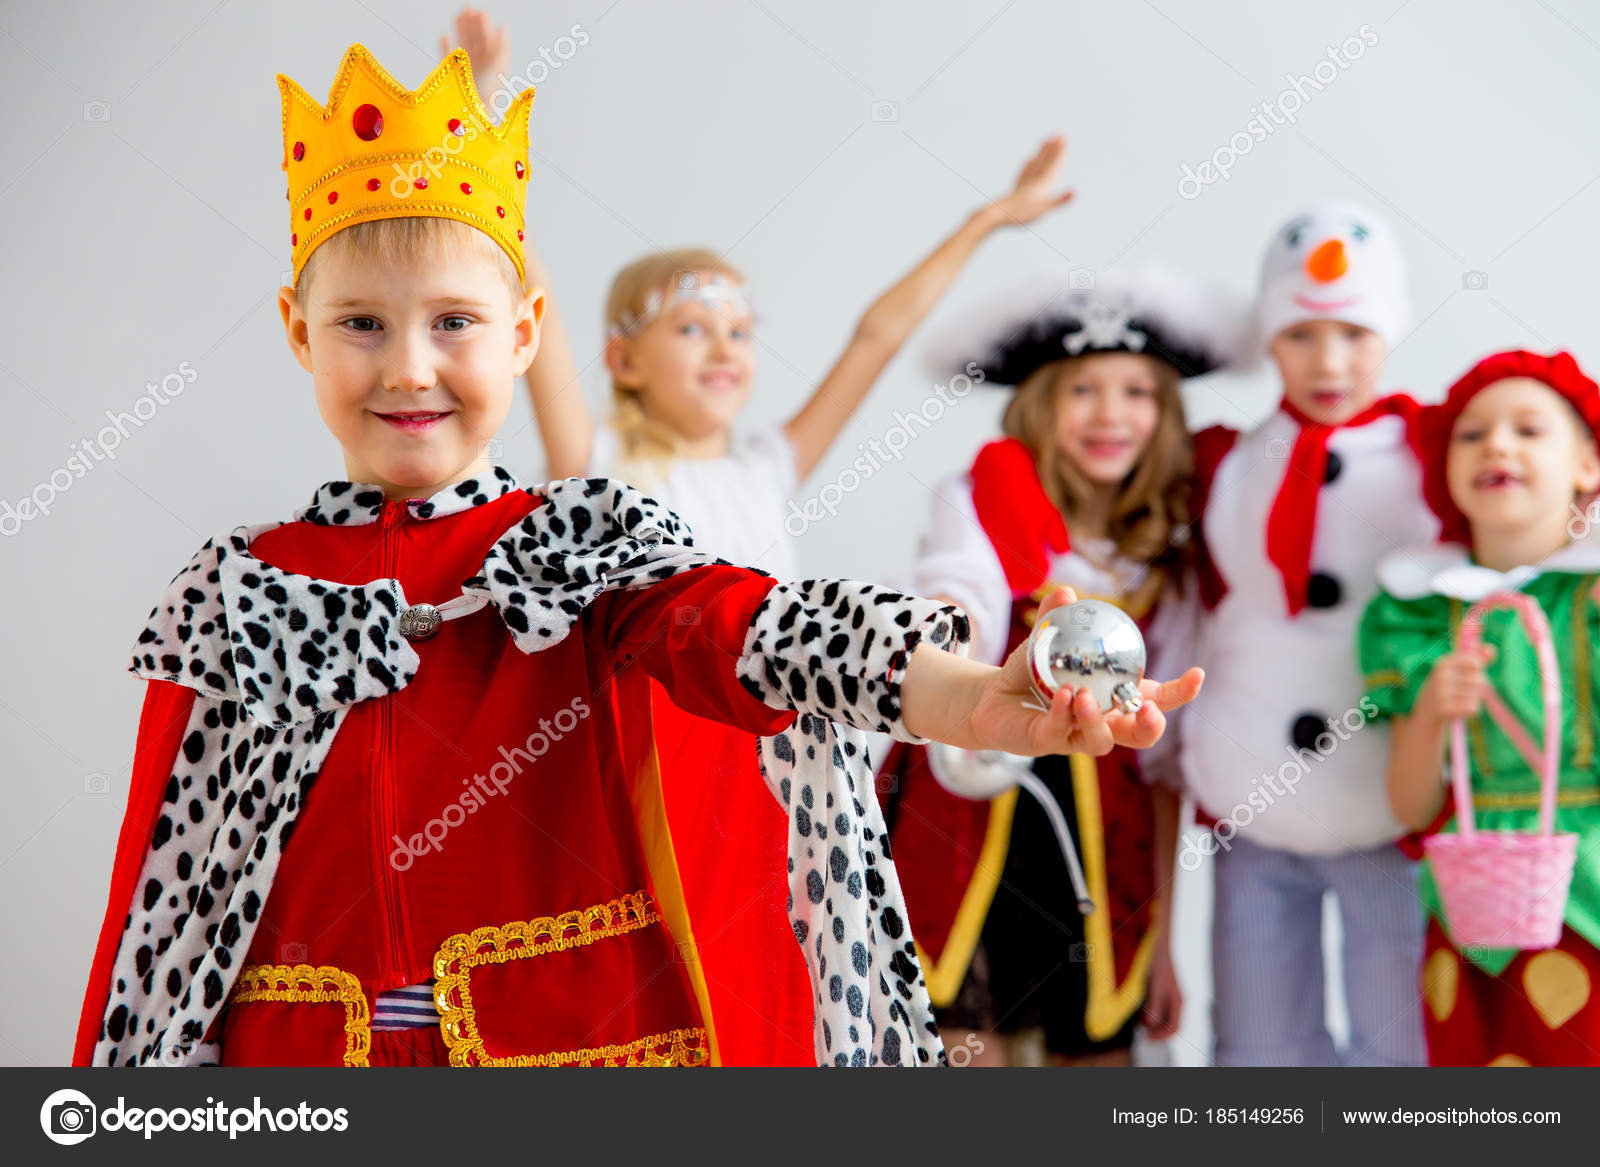 Kinder Kostüm party — Stockfoto © Lenanichizhenova #185149256